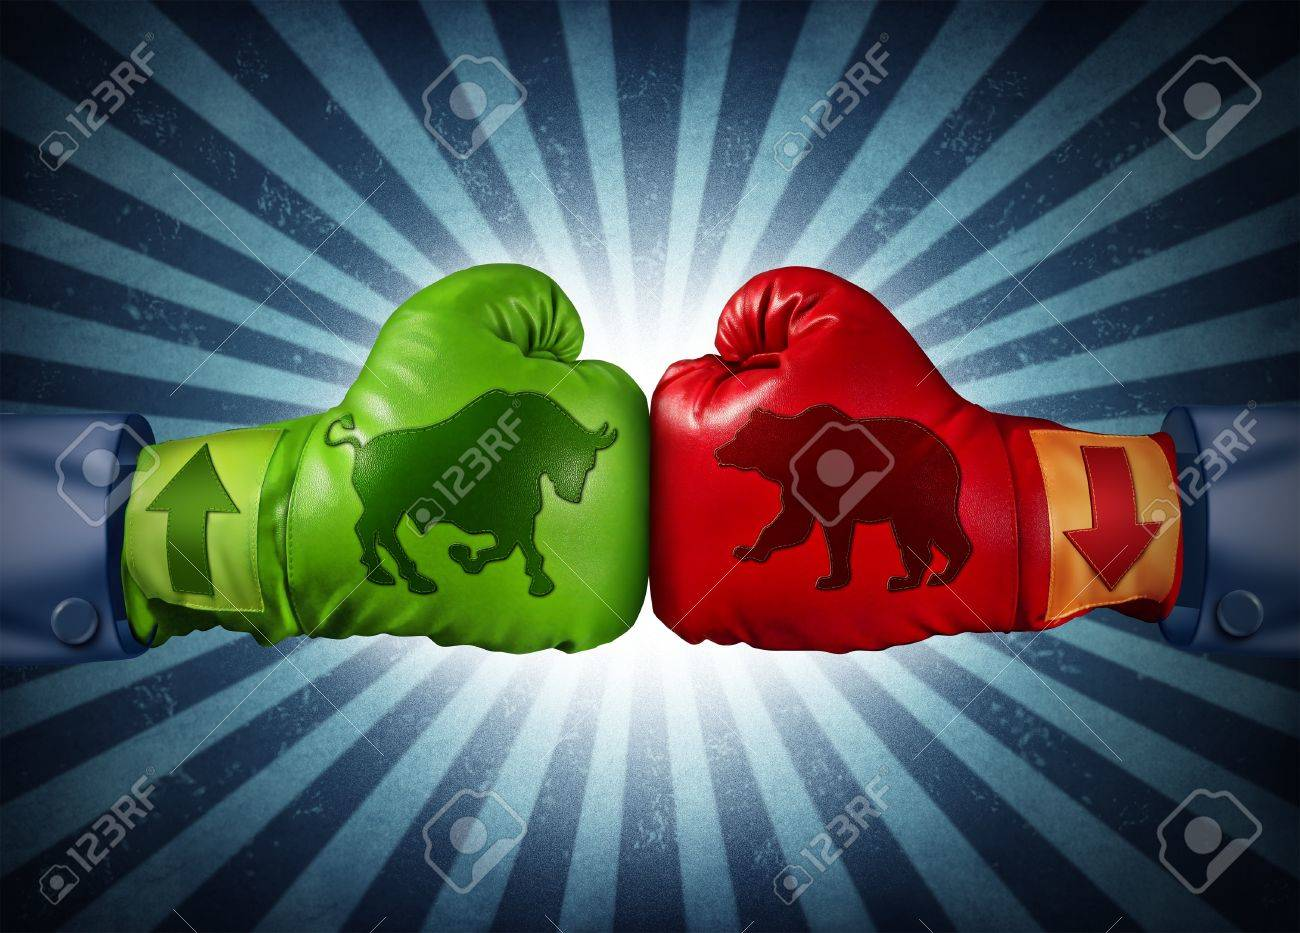 Stock market trading business concept with two boxing gloves stock market trading business concept with two boxing gloves with arrows going up and down with buycottarizona